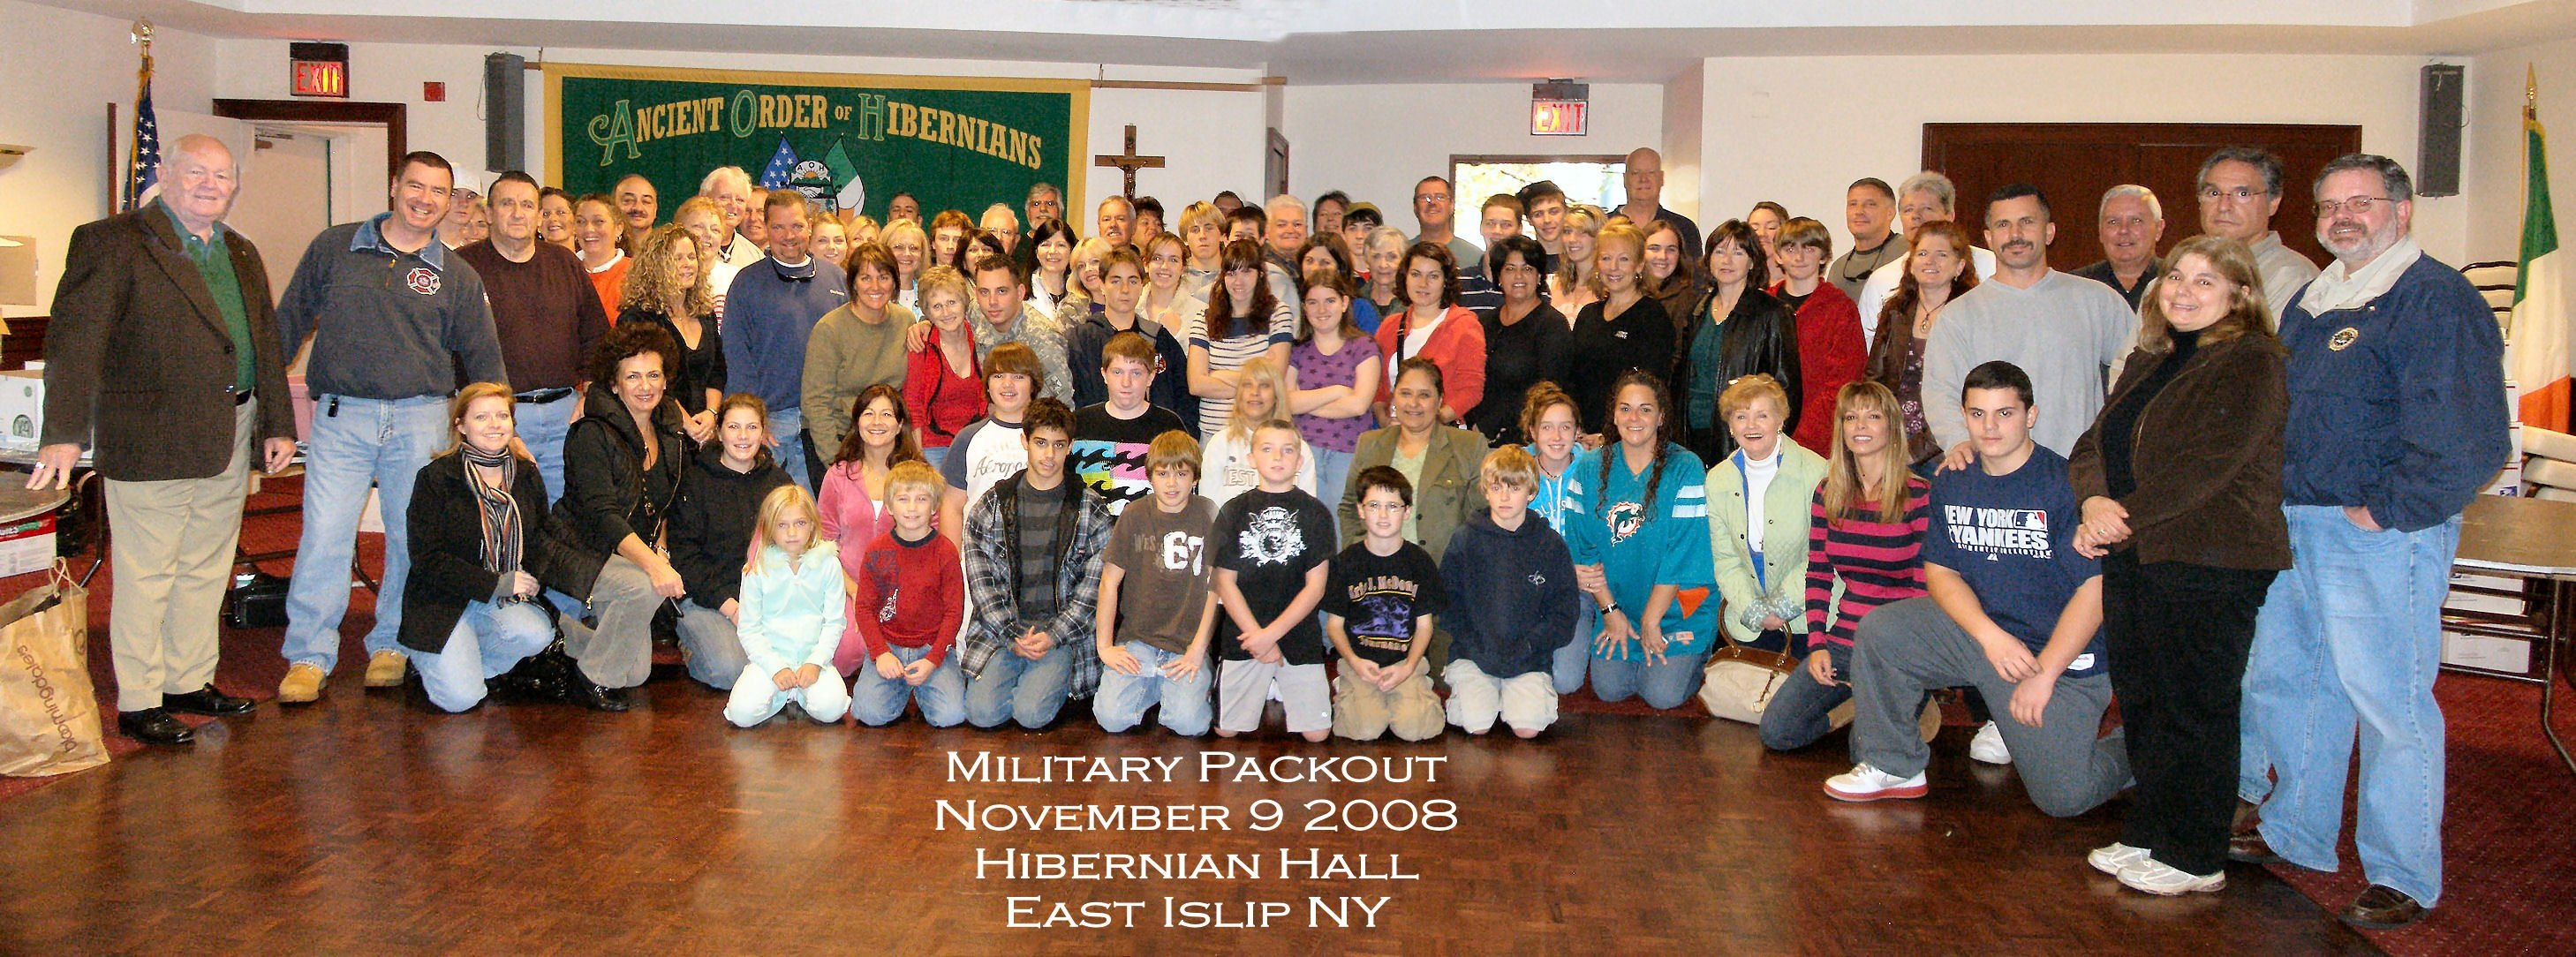 Military Pack Out - Nov 9 2008